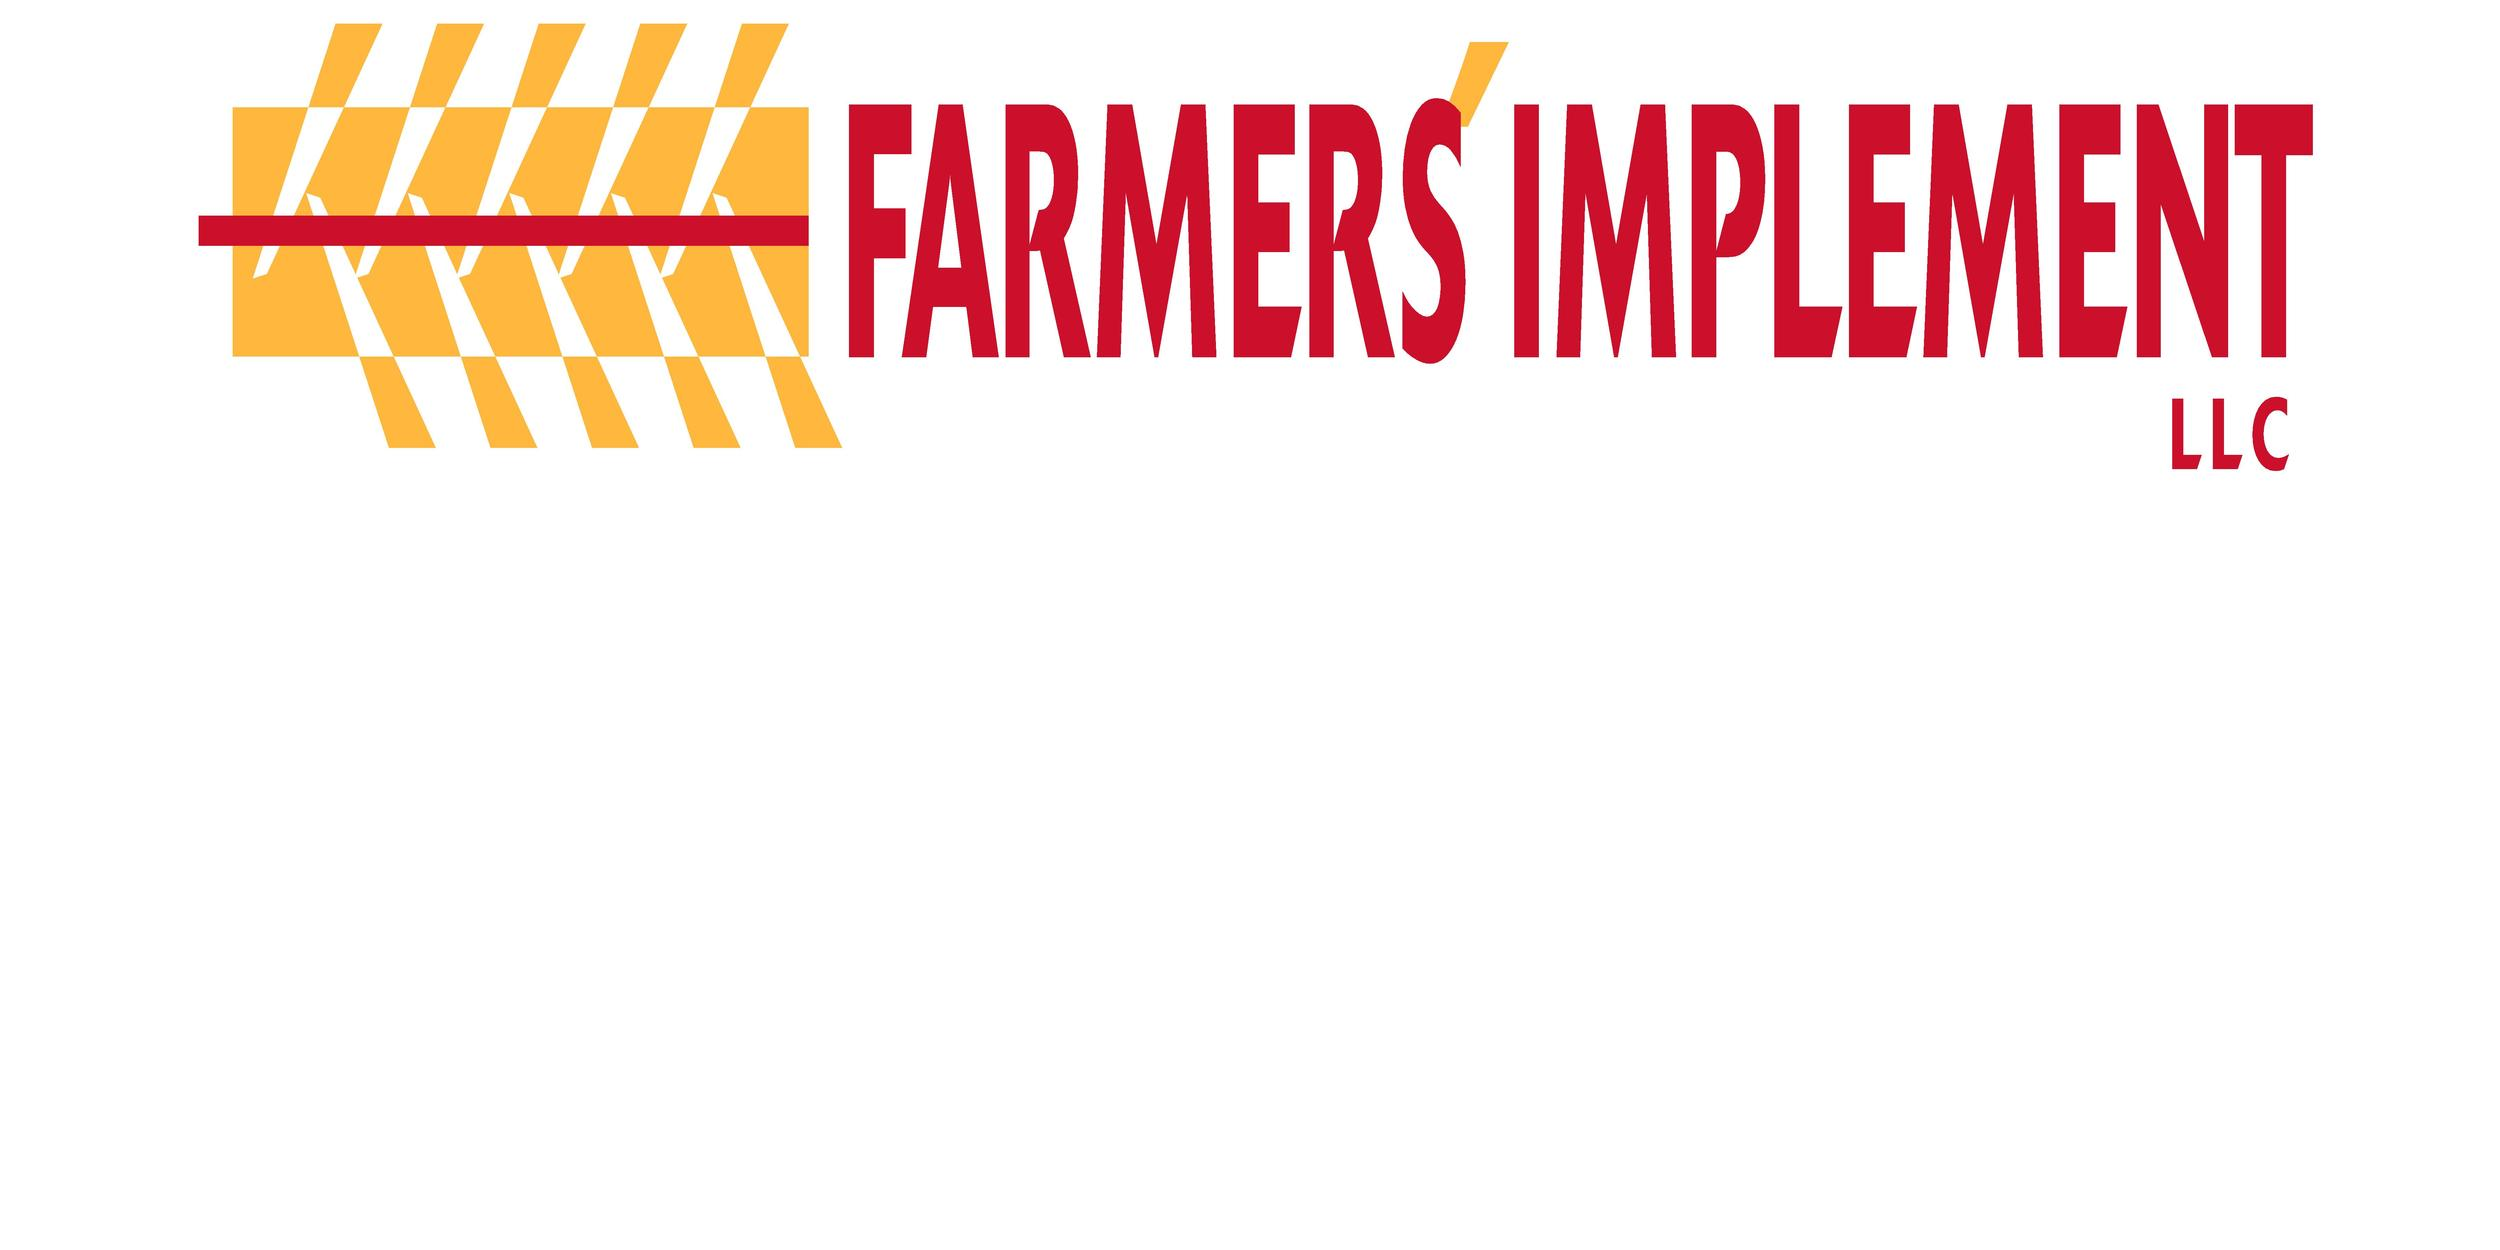 farmers implement-page-001.jpg